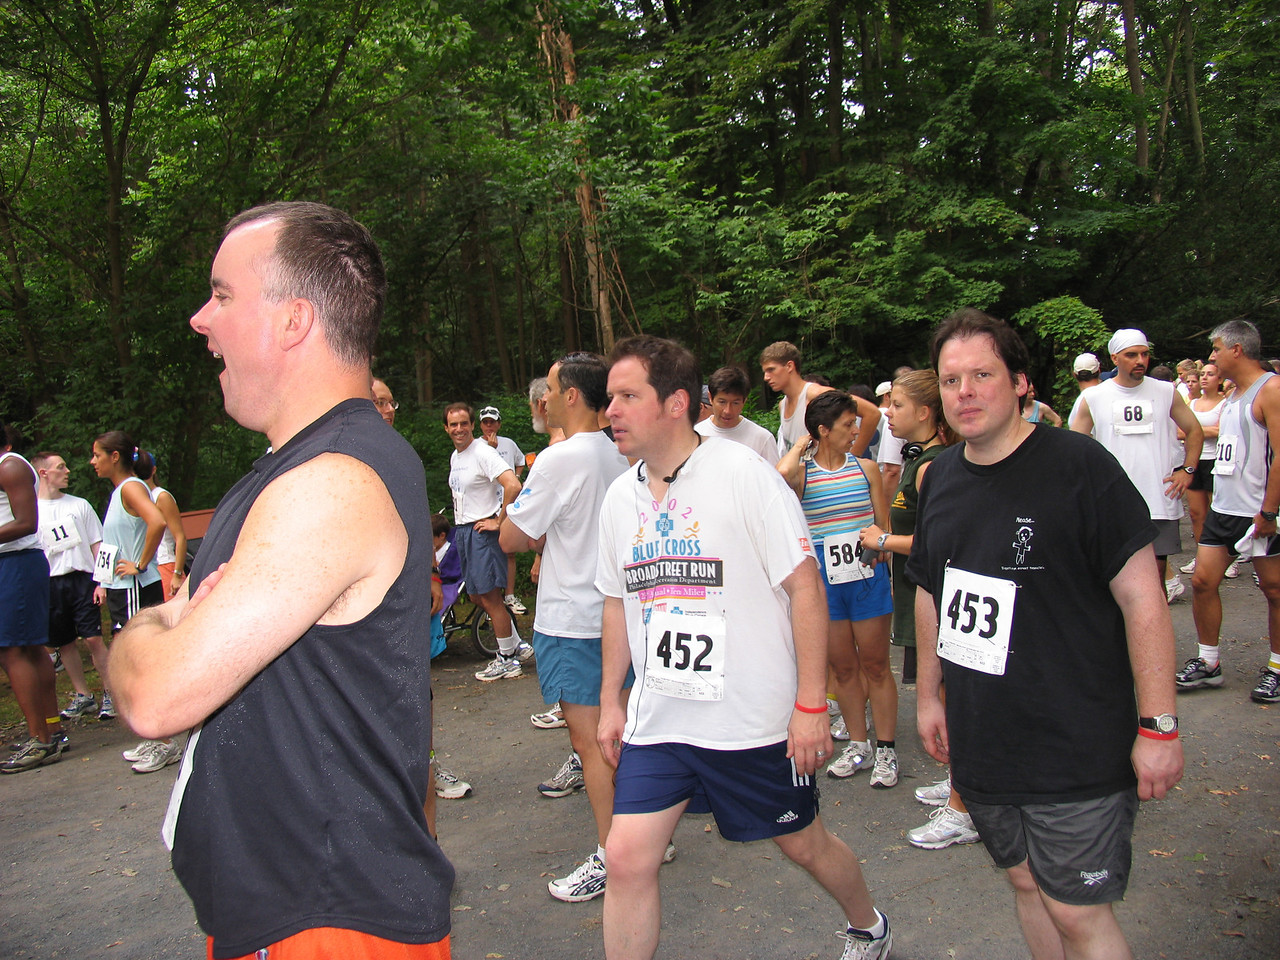 Highly trained athletes preparing themselves mentally for the grueling run - Fairmont Park in Chestnut Hill - July 2005